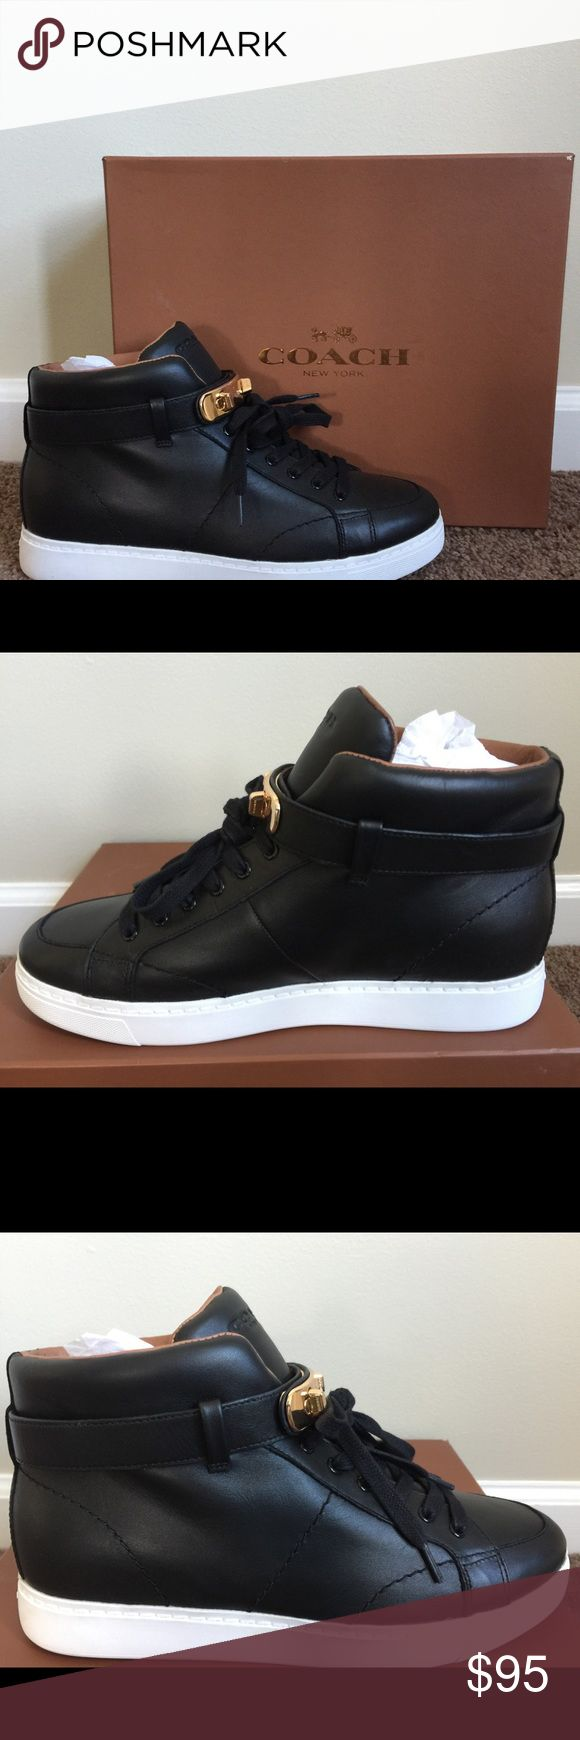 Coach size 8 sneakers Black leather sneaker Coach Shoes Sneakers